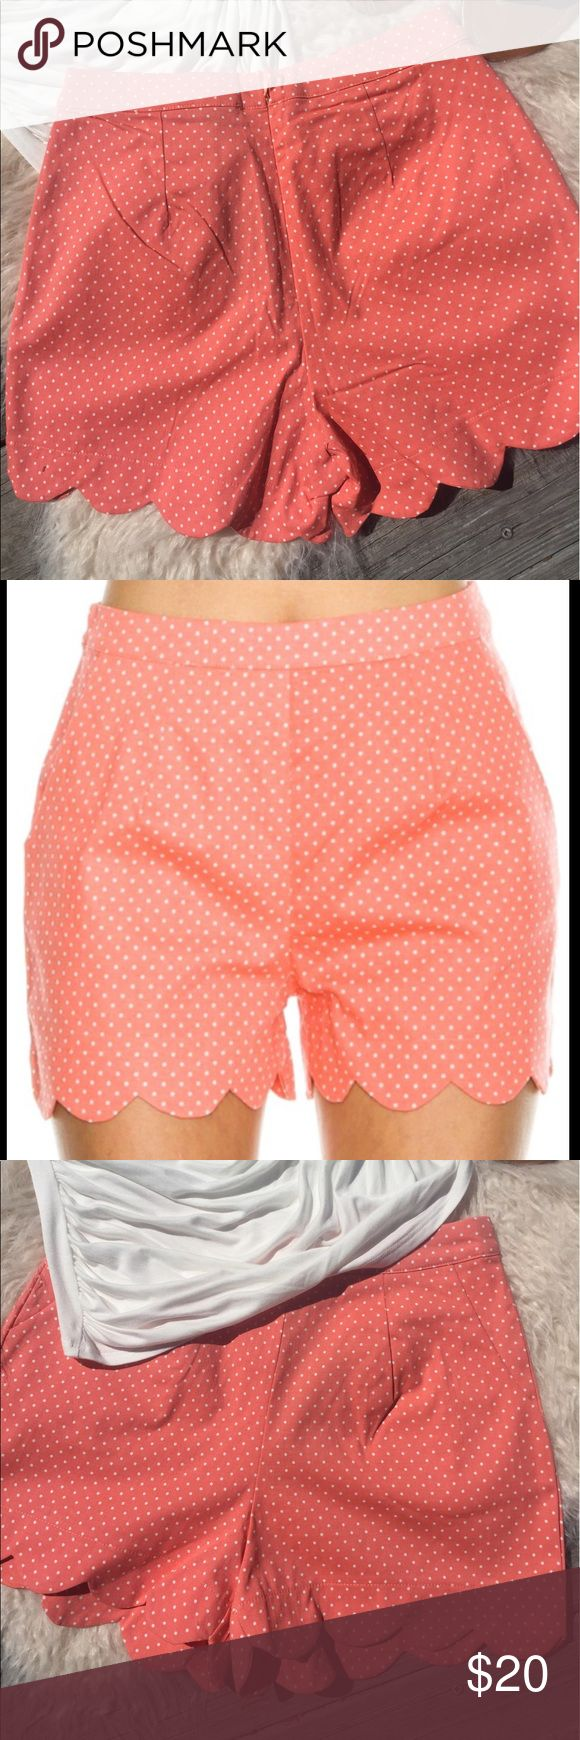 🆕 HIGH WAISTED CORAL SCALLOPED SHORTS 🆕 Brand New Boutique Shorts!!! Coral polka dot scalloped hem shorts with zip up back. These shorts are high waisted. Made of 97% cotton and 3% spandex. These shorts have a 3 inch inseam.  👚 Size chart is in photos. I recommend sizing up a size in these shorts. Very J Shorts